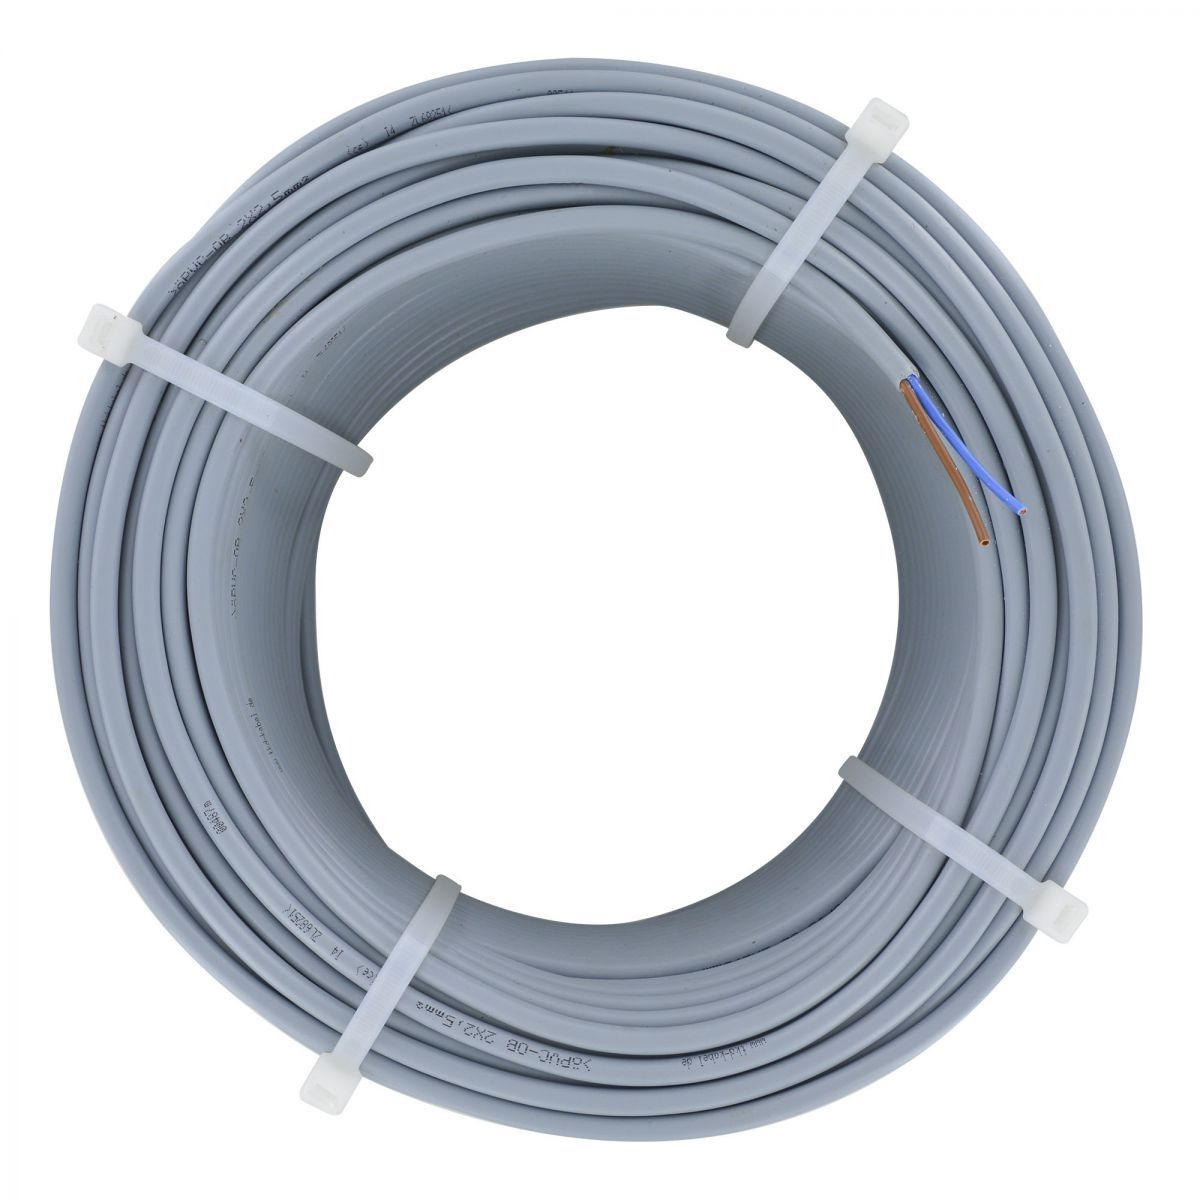 cable 2x25 mm liyy 100 m if 10m cable powerunit is not sufficient